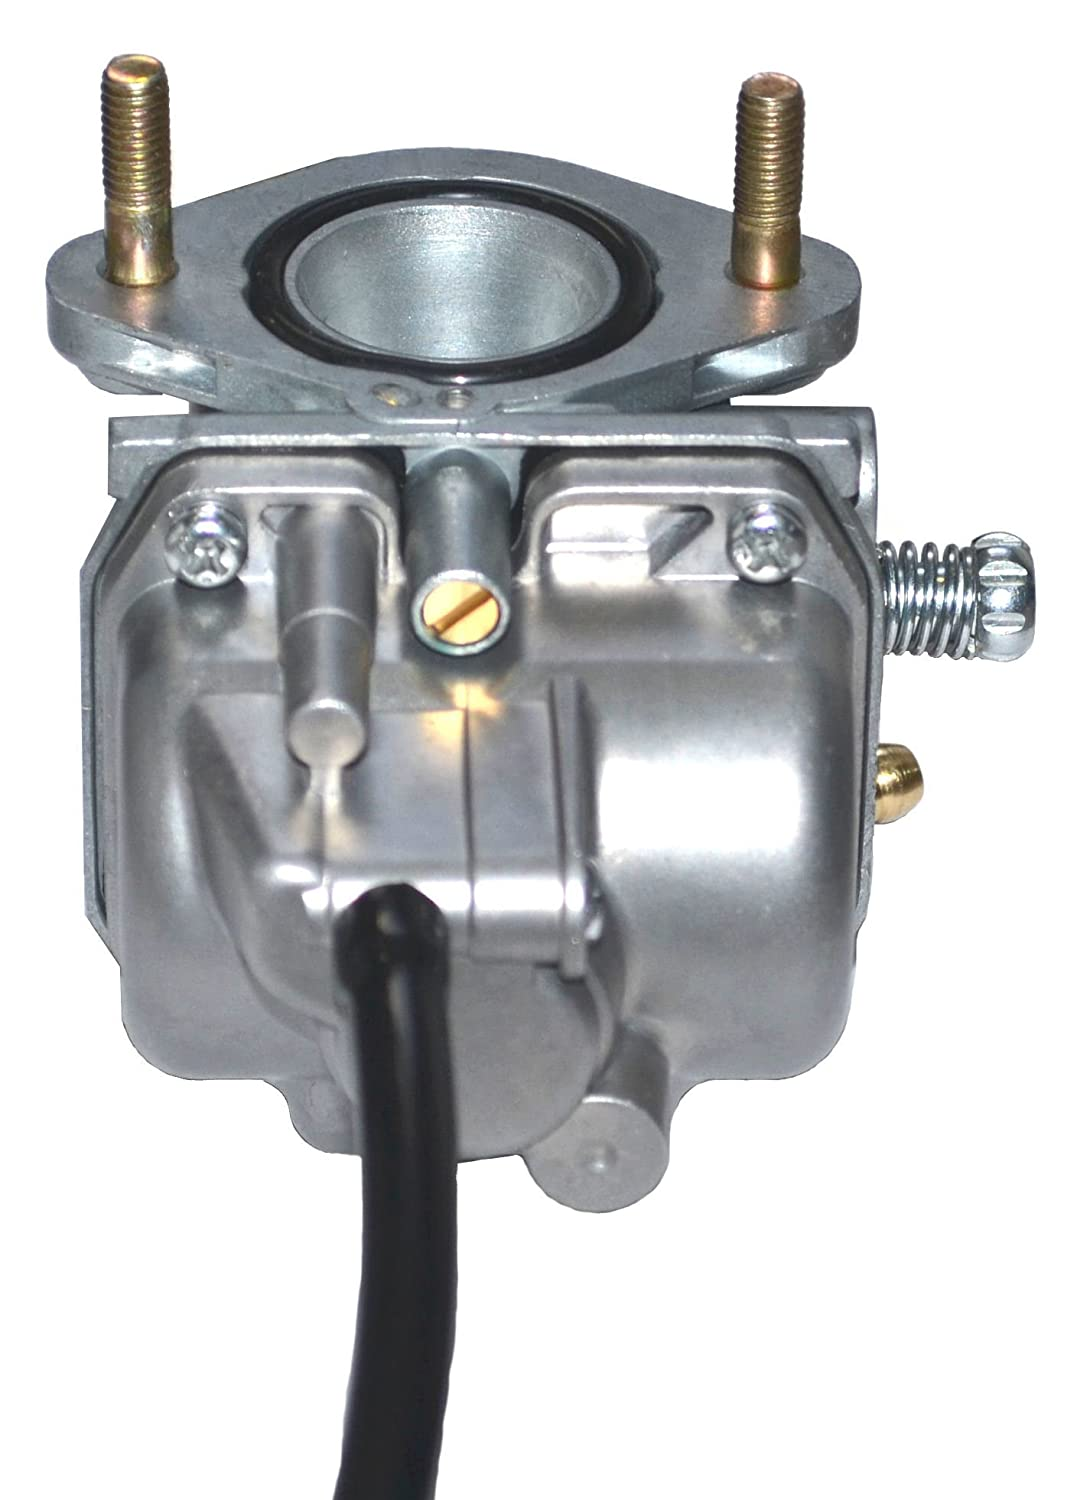 ZOOM ZOOM PARTS NEW! CARBURETOR FITS YAMAHA GRIZZLY 125 YFM125 YFM CARB  CARBY 2004-2013 DIRECT FIT